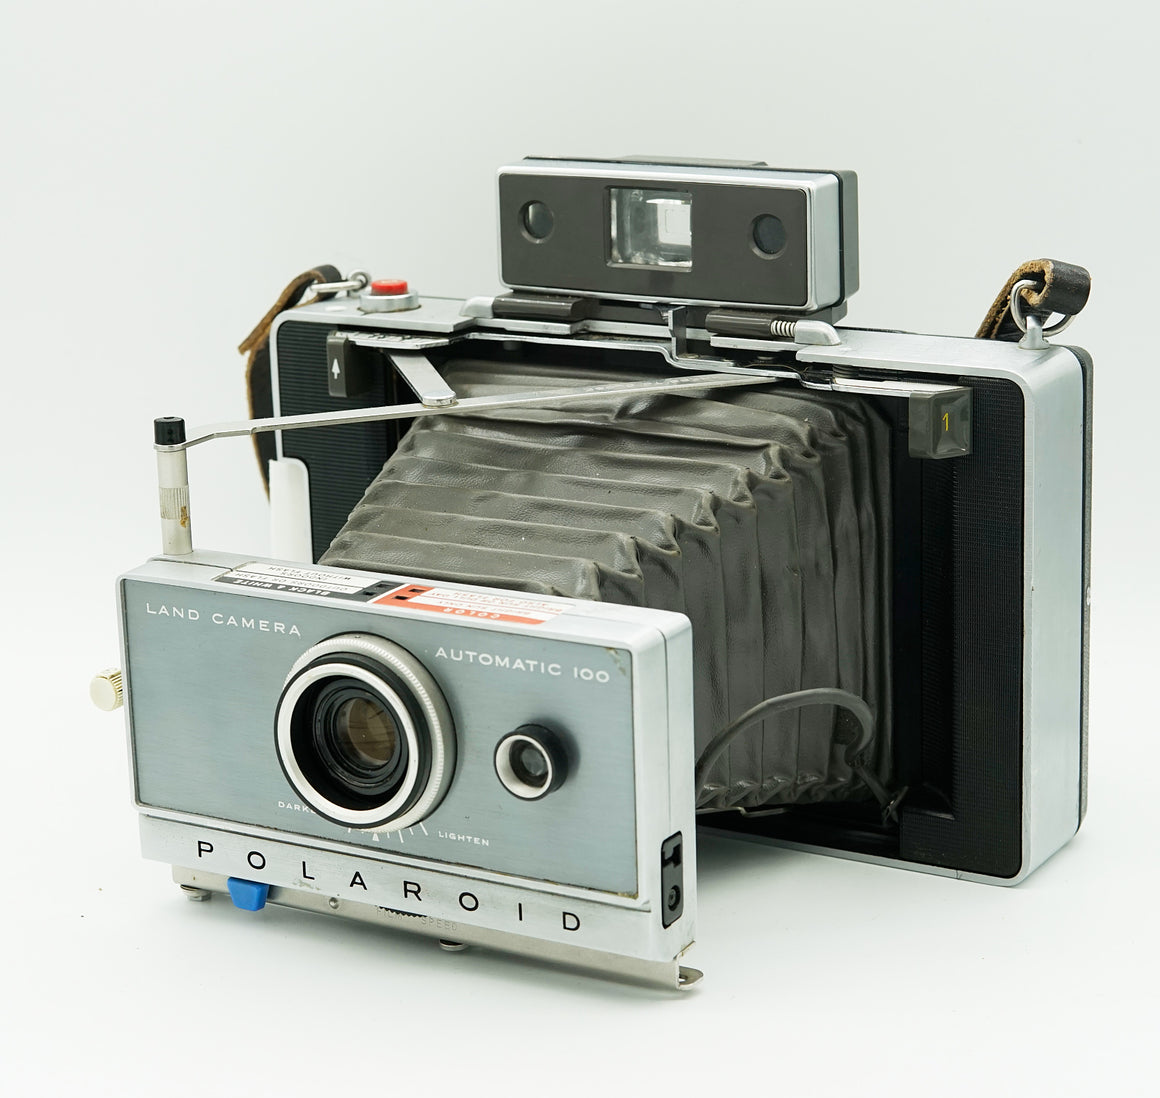 Polaroid Land Model 100